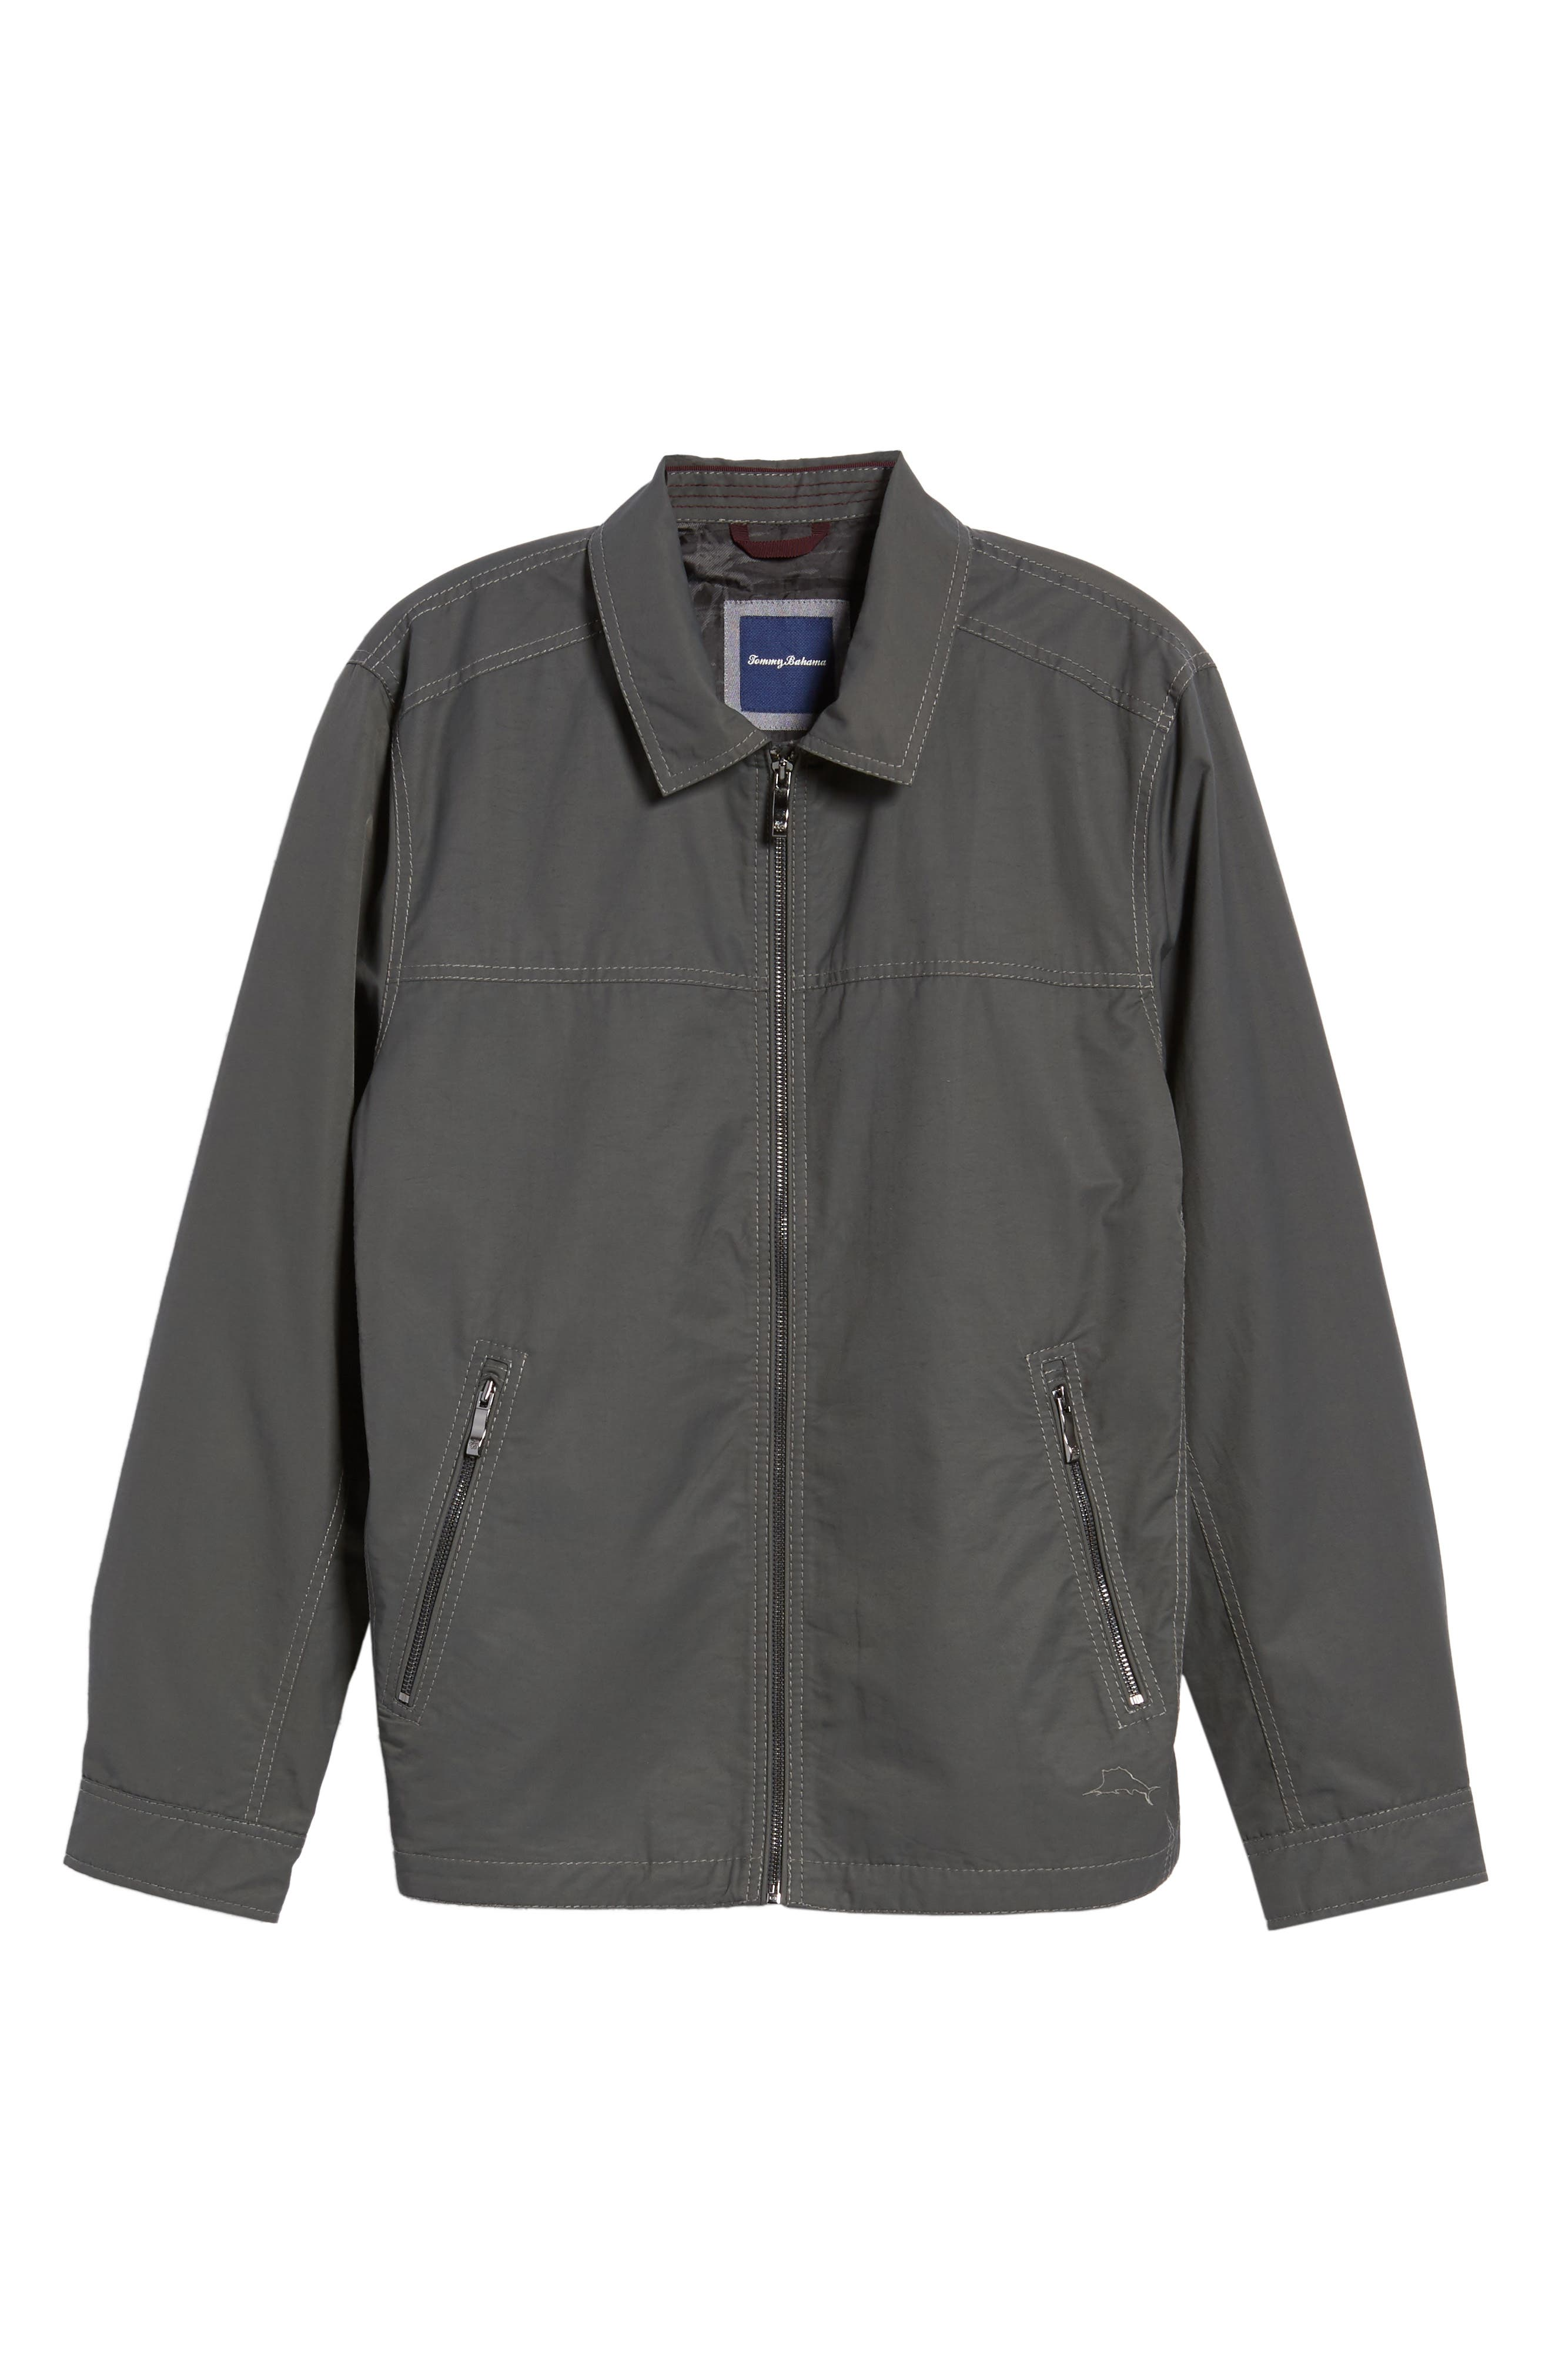 Santa Cruiser Jacket,                             Alternate thumbnail 5, color,                             002